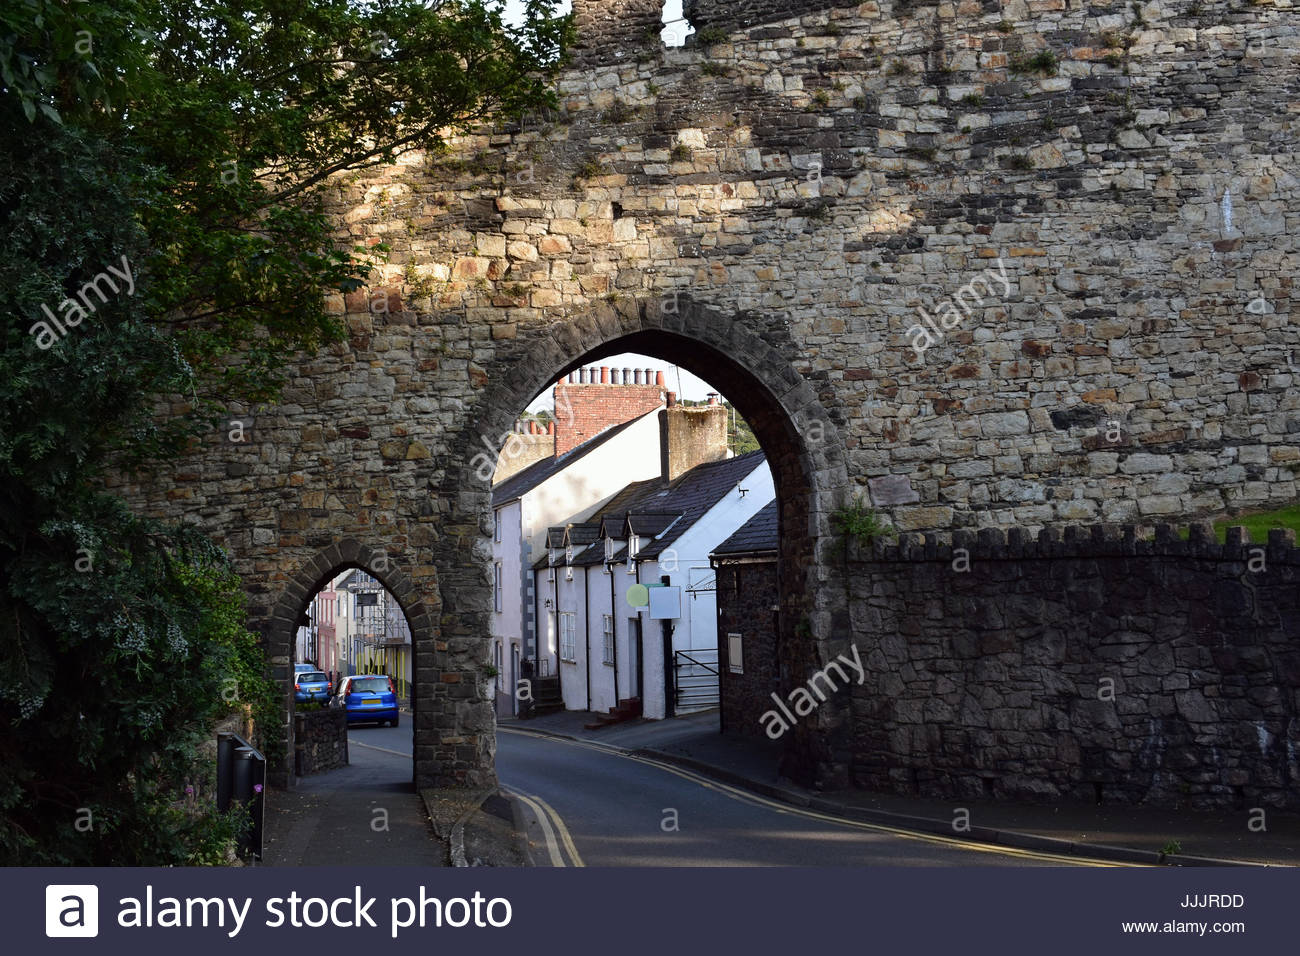 Portal in the Conwy Town Walls during sunset - Stock Image